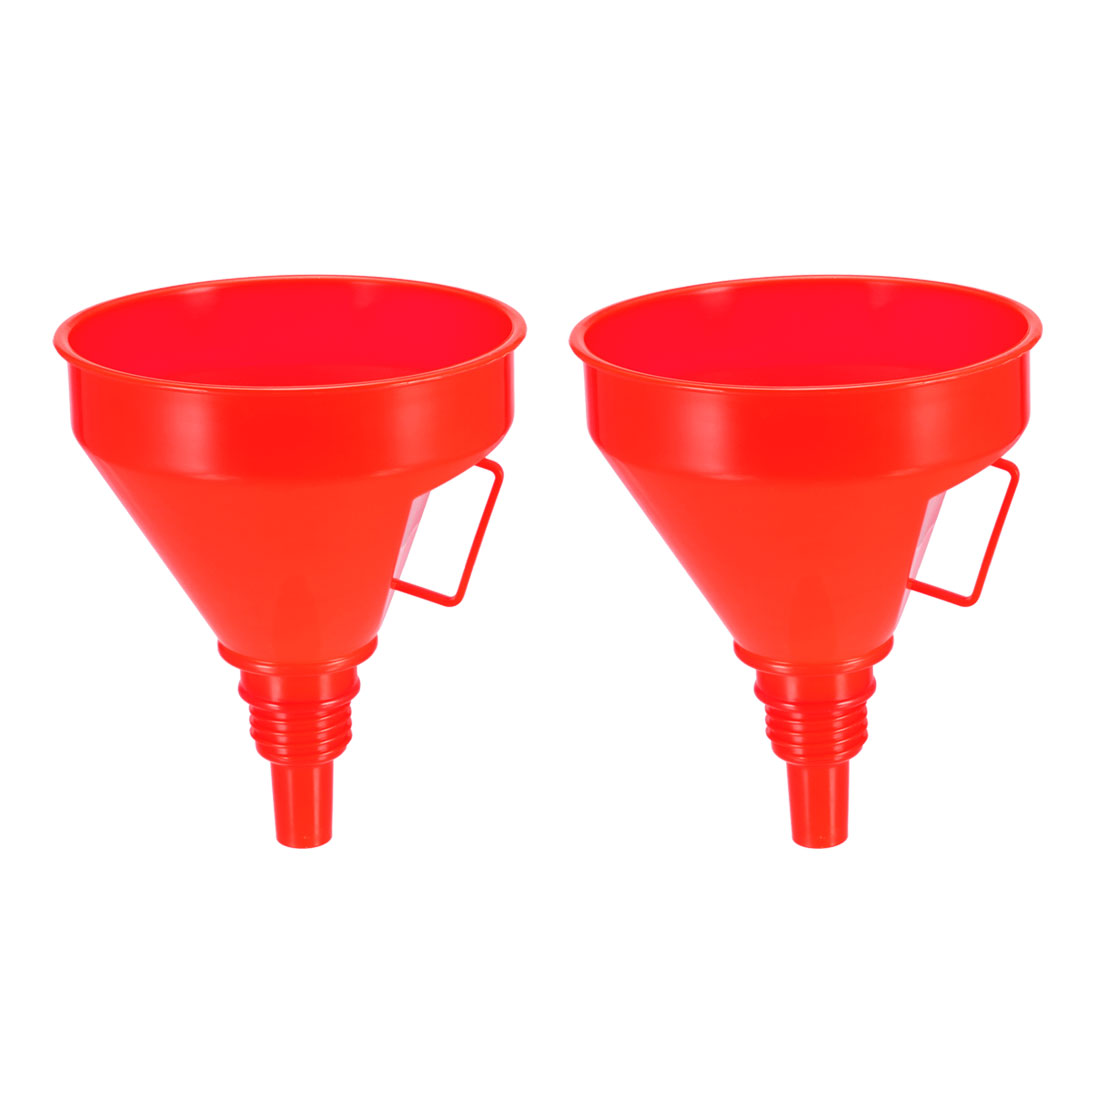 "Filter Funnel 6"" Plastic Red Feul Funnel for Petrol Engine Oil Water Fuel 2pcs"